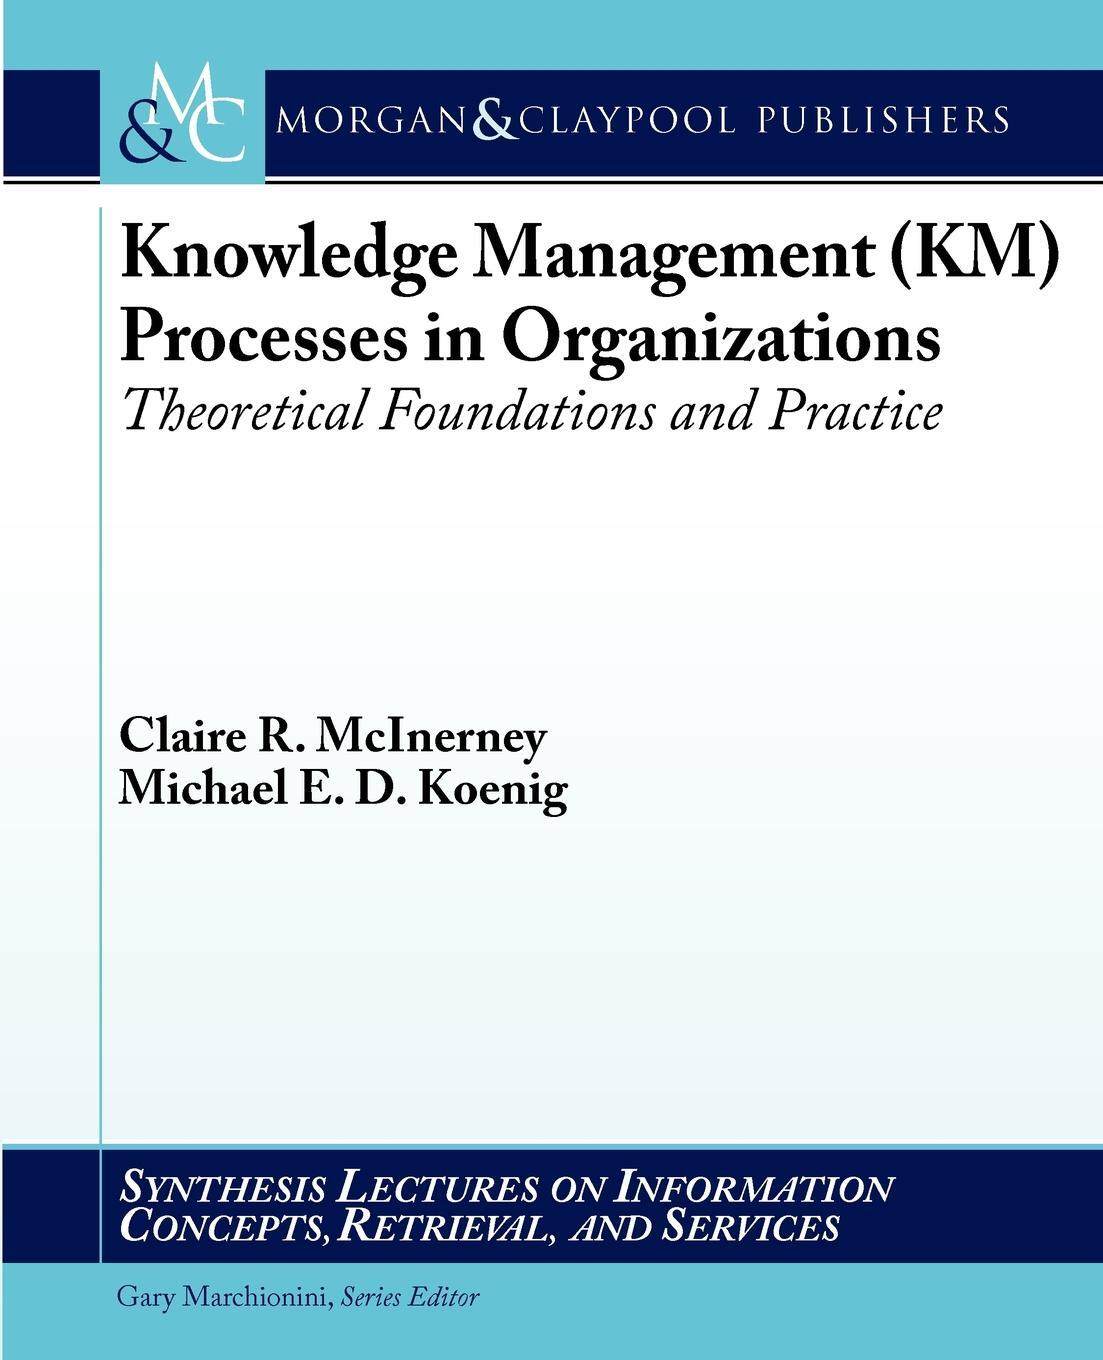 Knowledge Management (Km) Processes in Organizations. Theoretical Foundations and Practice. Claire McInerney, Michael E. D. Koenig